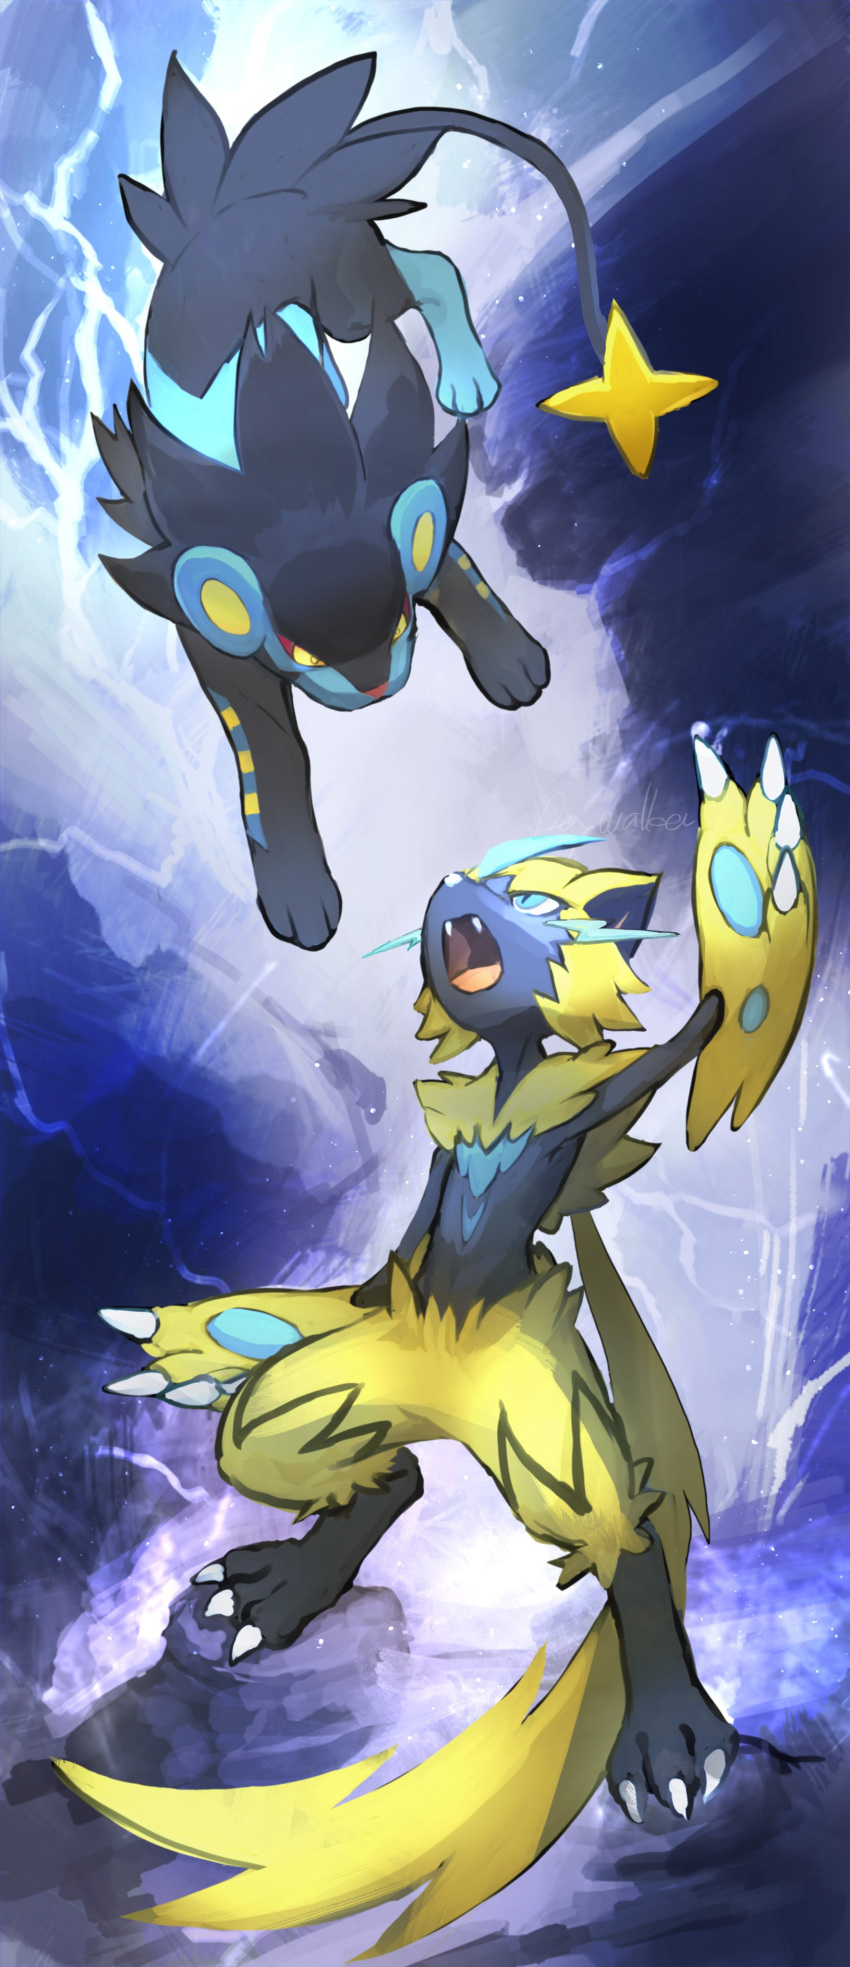 1boy absurdres animal_ears arm_up artist_name blue_eyes cat_boy cat_ears cat_tail claws colored_sclera commentary day_walker1117 electricity english_text eye_contact fangs fighting full_body furry gen_4_pokemon gen_7_pokemon highres jumping legendary_pokemon looking_at_another luxray male_focus mythical_pokemon open_mouth paws pokemon pokemon_(creature) red_sclera signature standing tail whiskers yellow_eyes zeraora